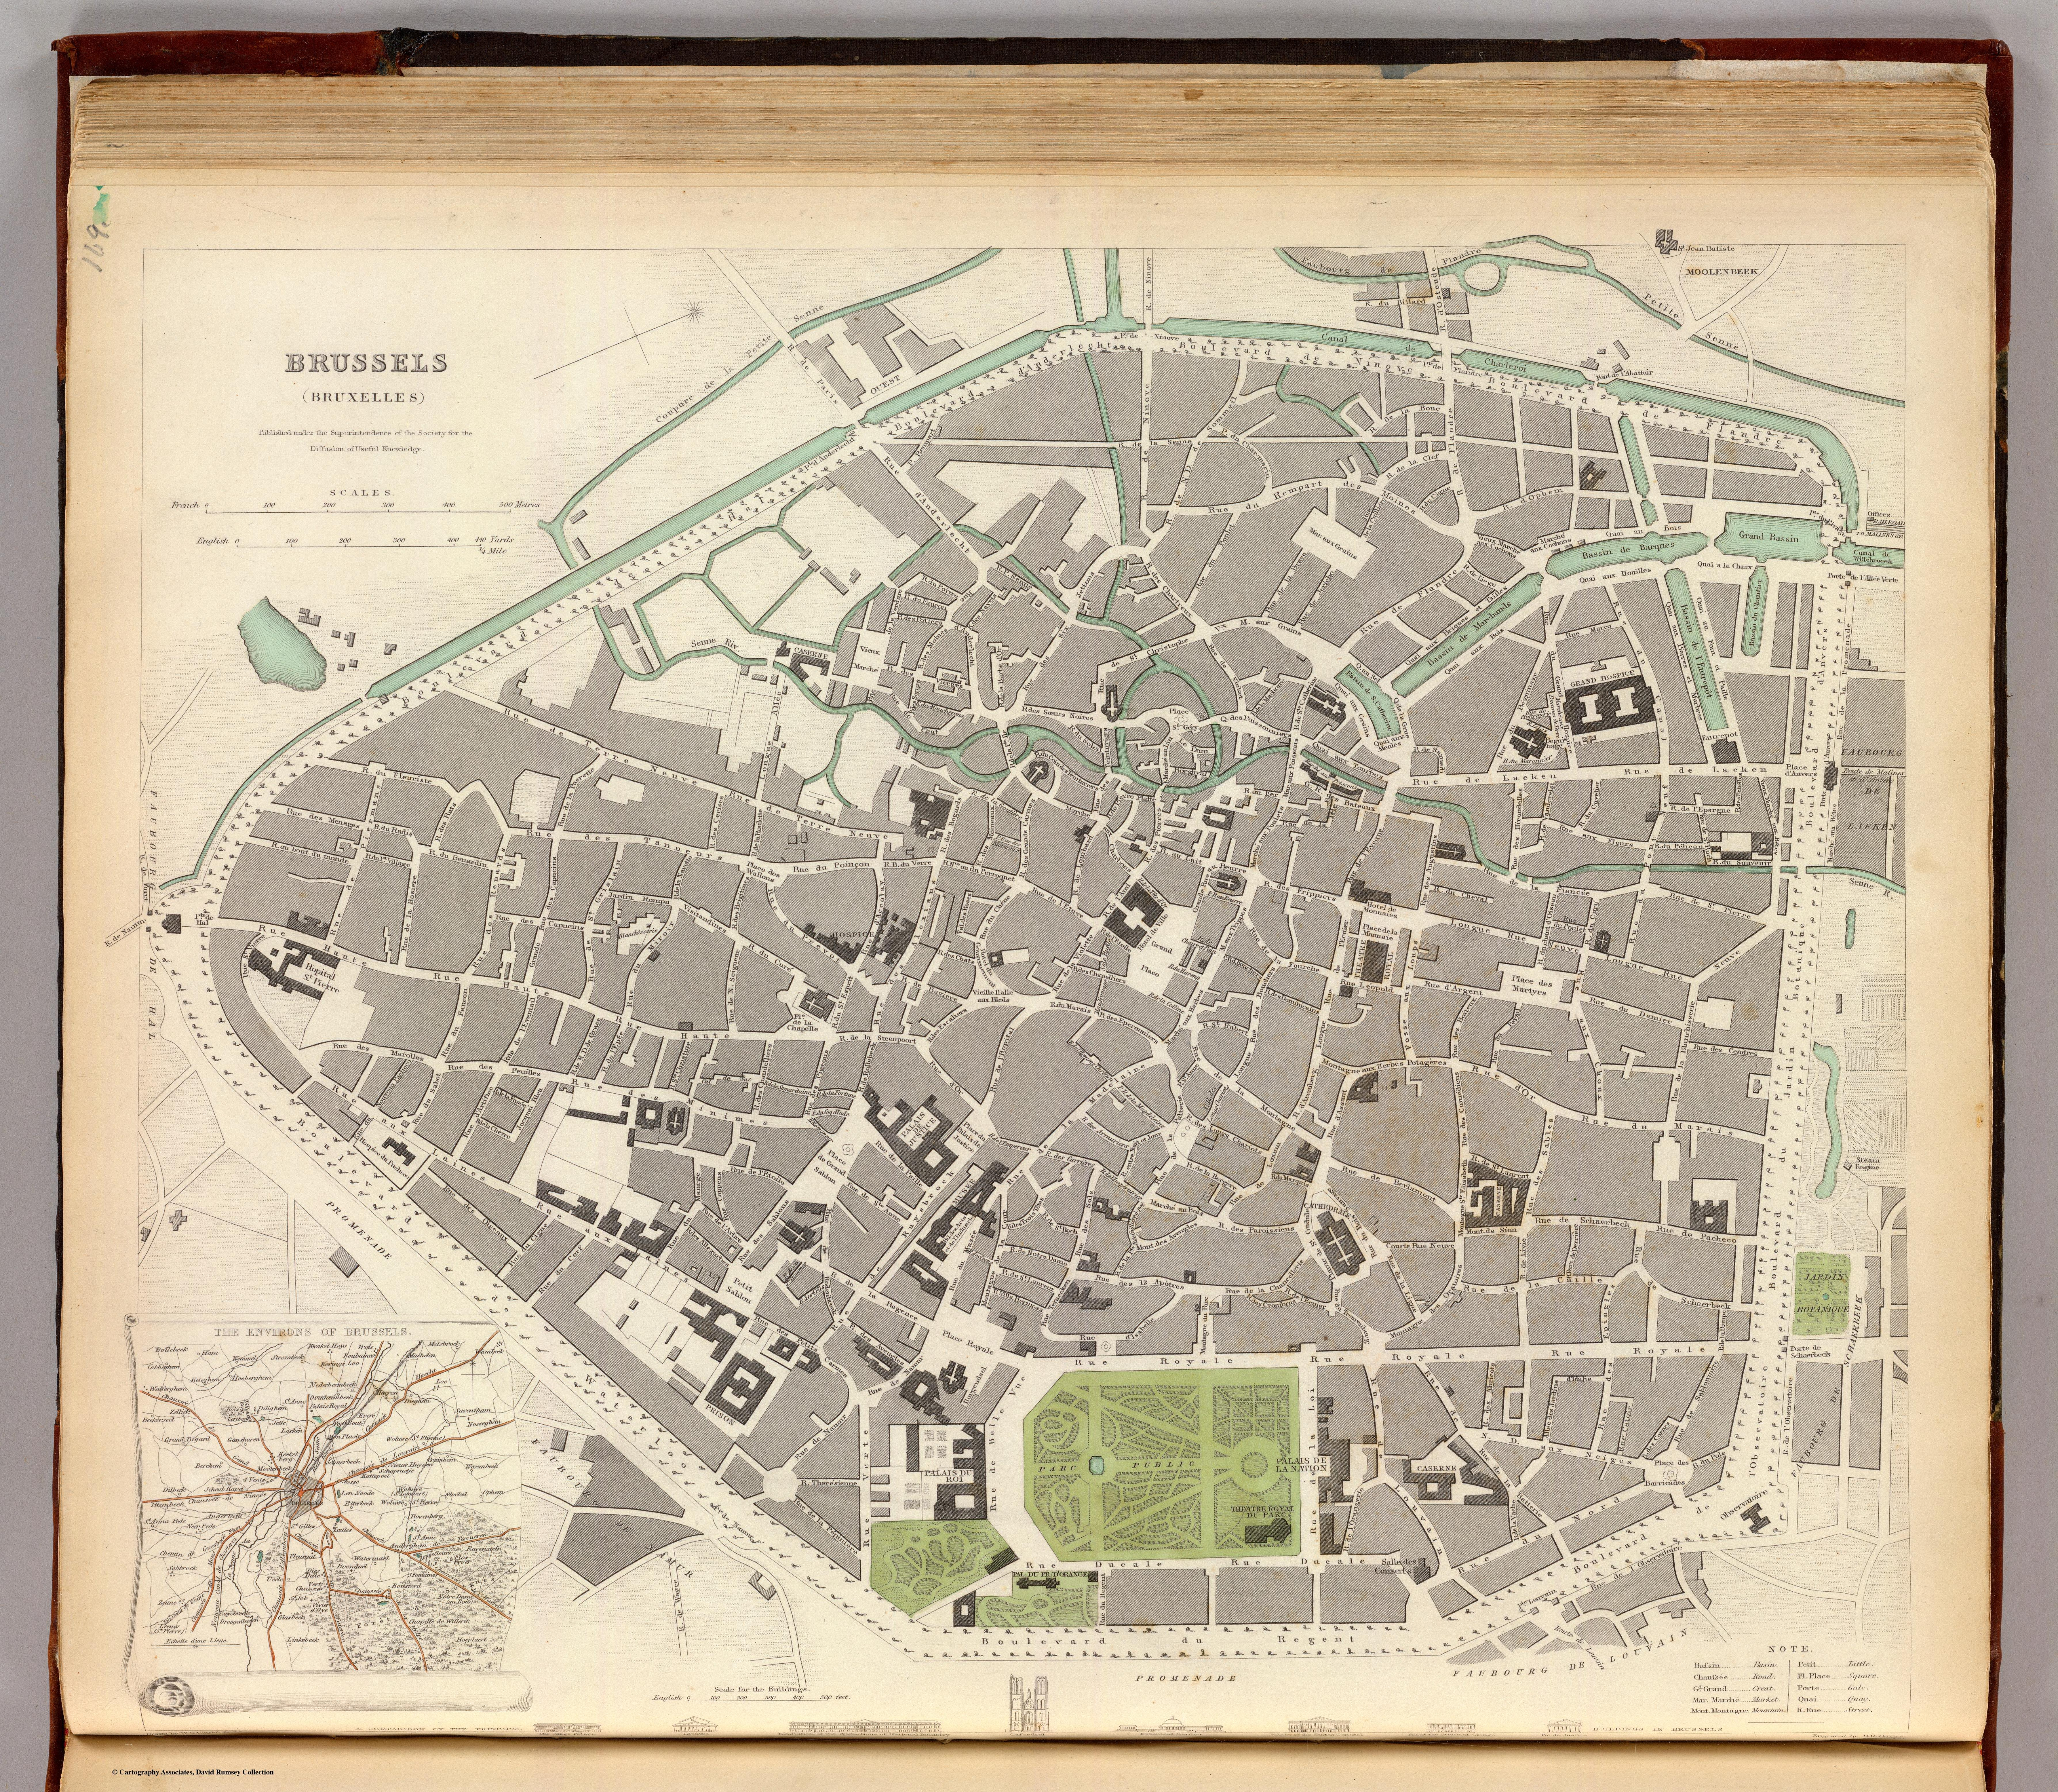 a map of brussels from 1837 shows roughly its 1815 extent with north more or